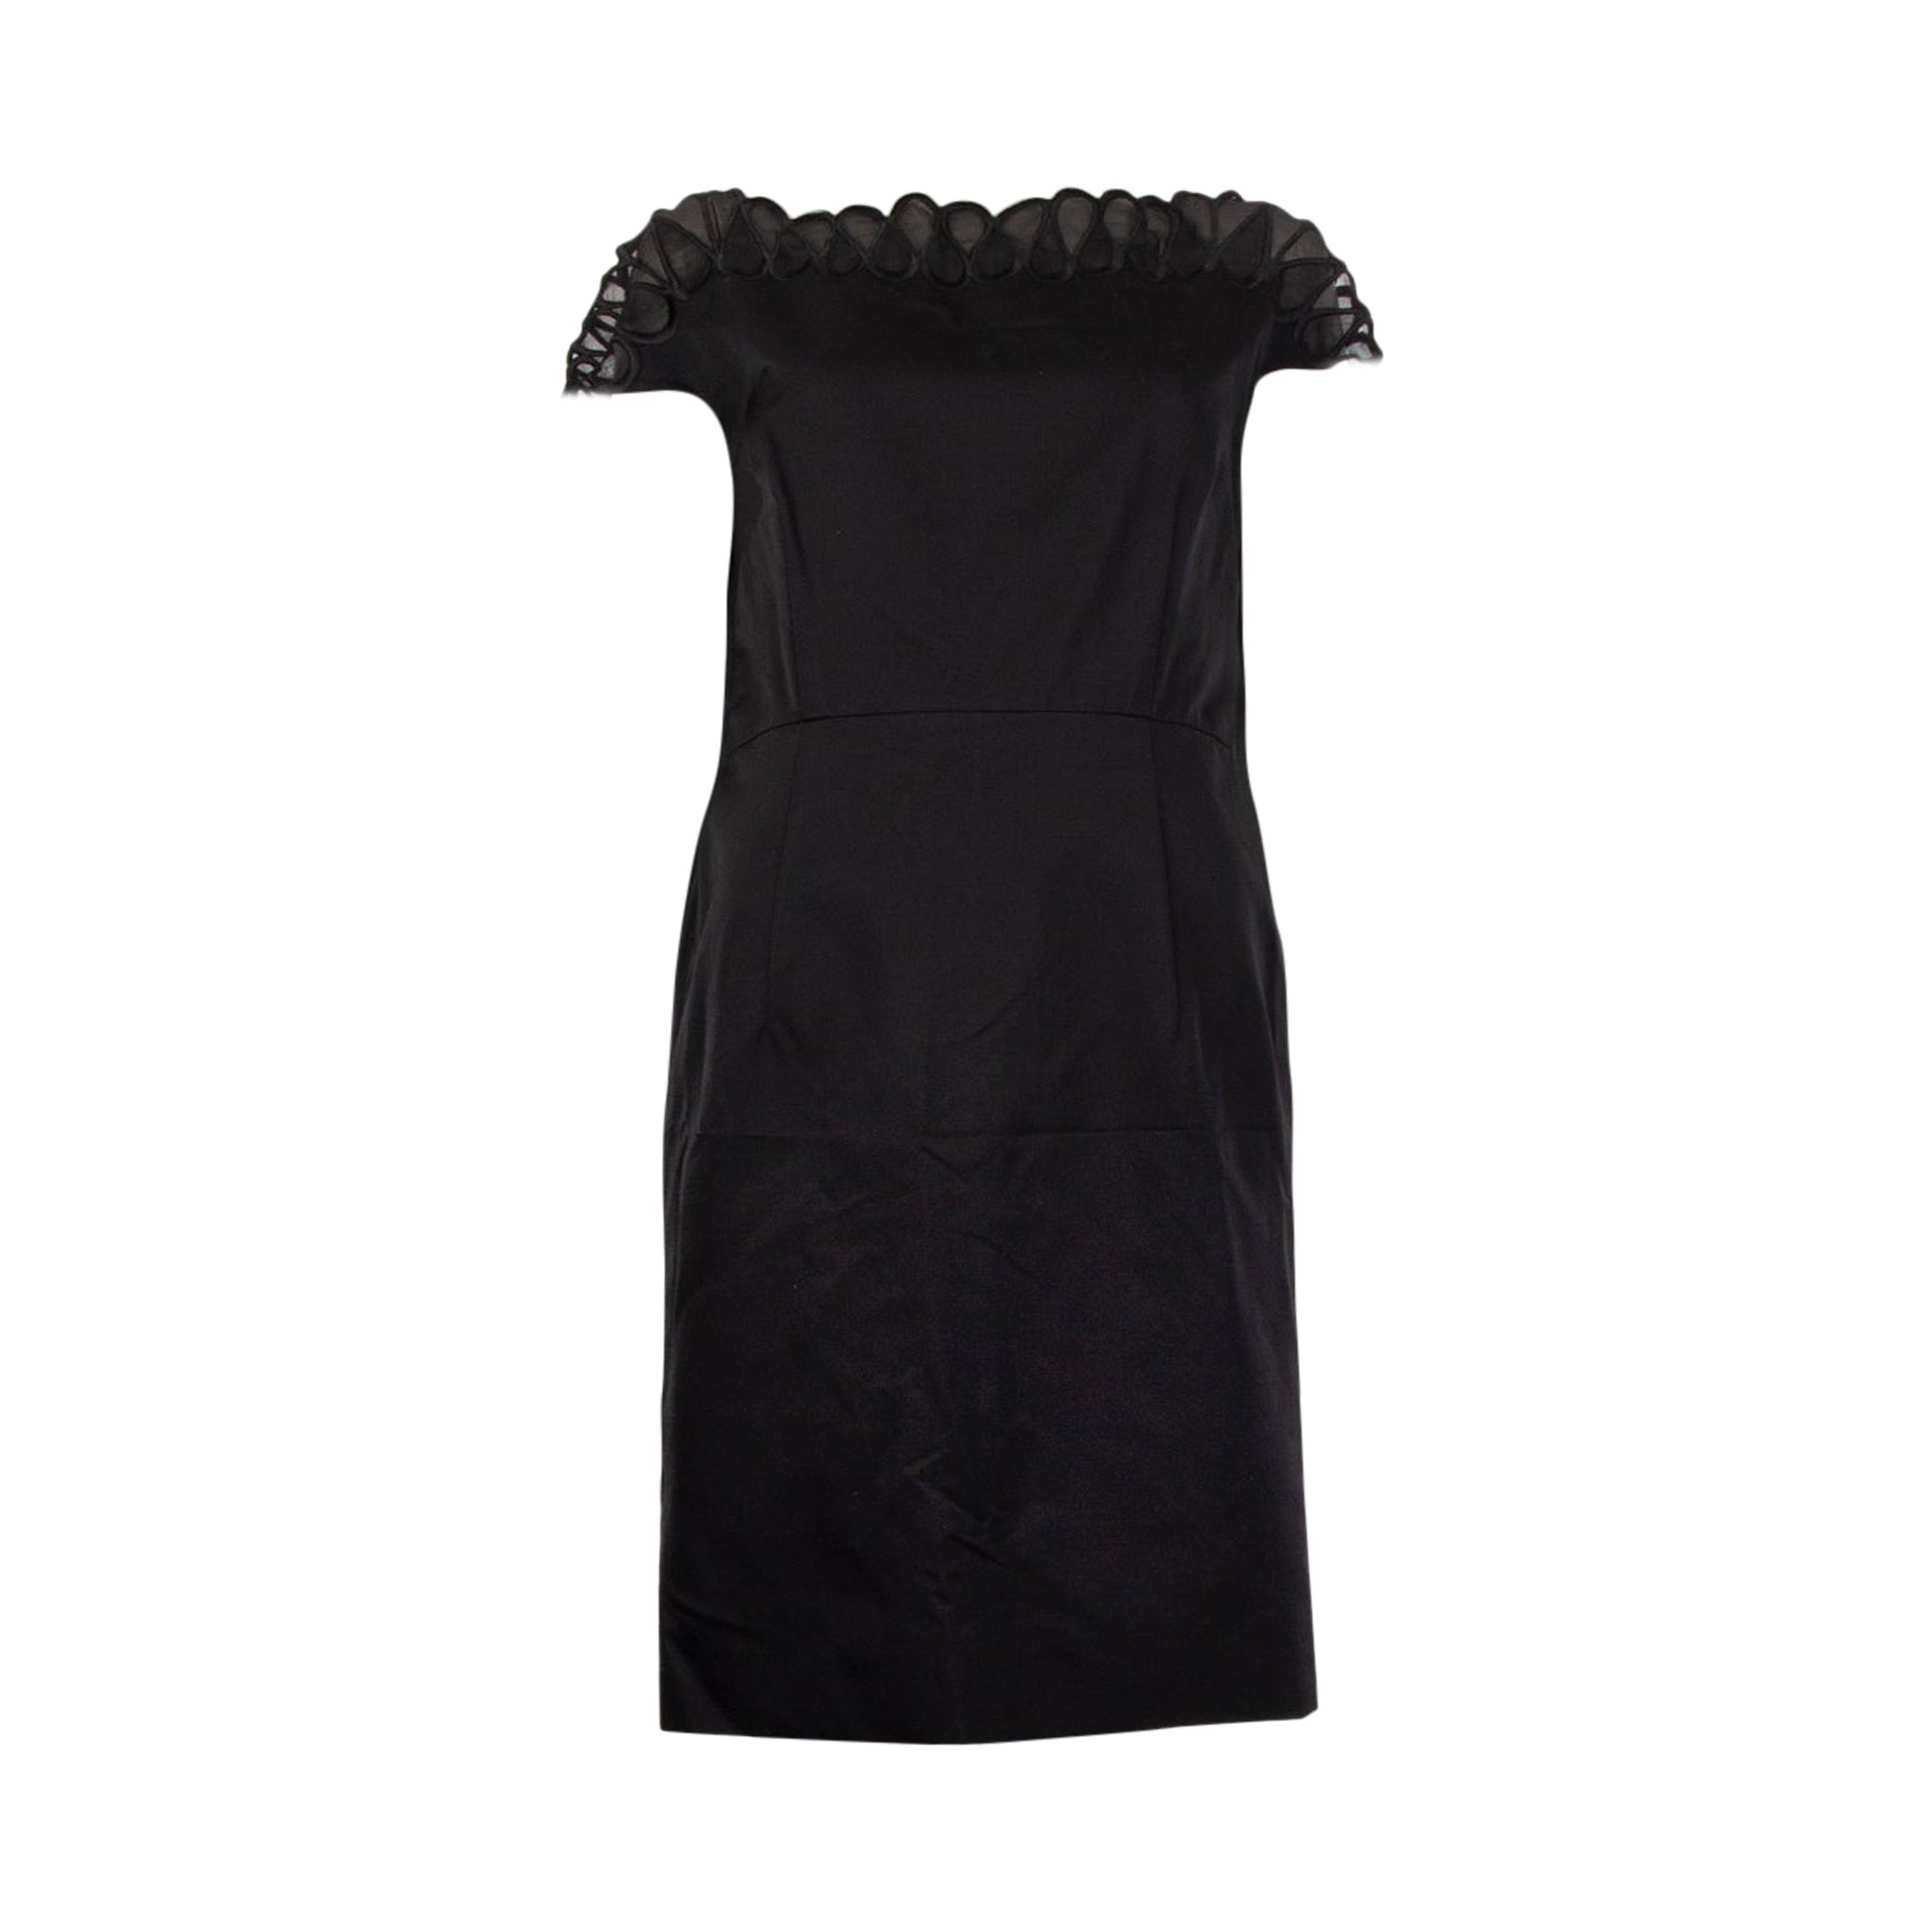 CHRISTIAN DIOR black wool & silk EMBROIDERED Cocktail Dress 44 XL